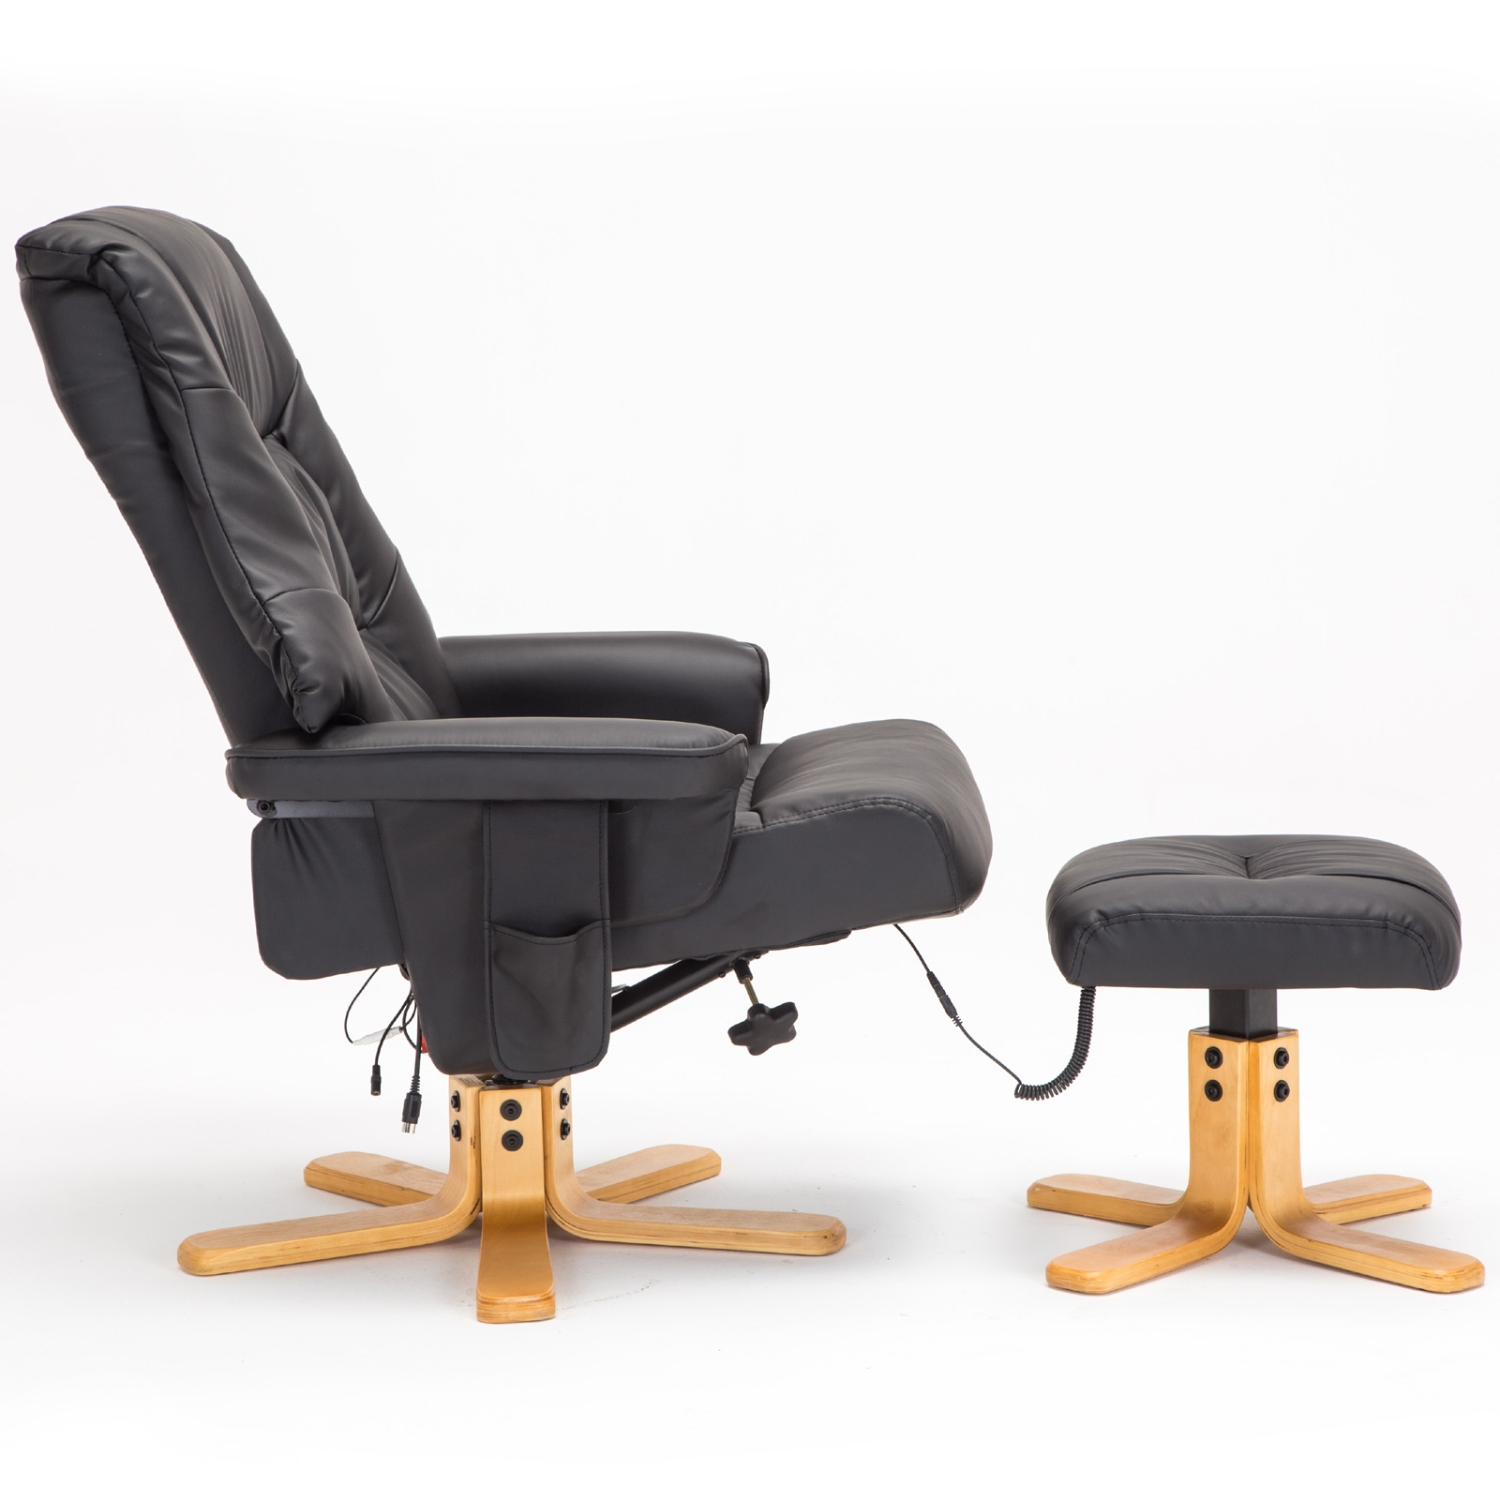 massage leisure recliner chair swivel bonded leather armchai